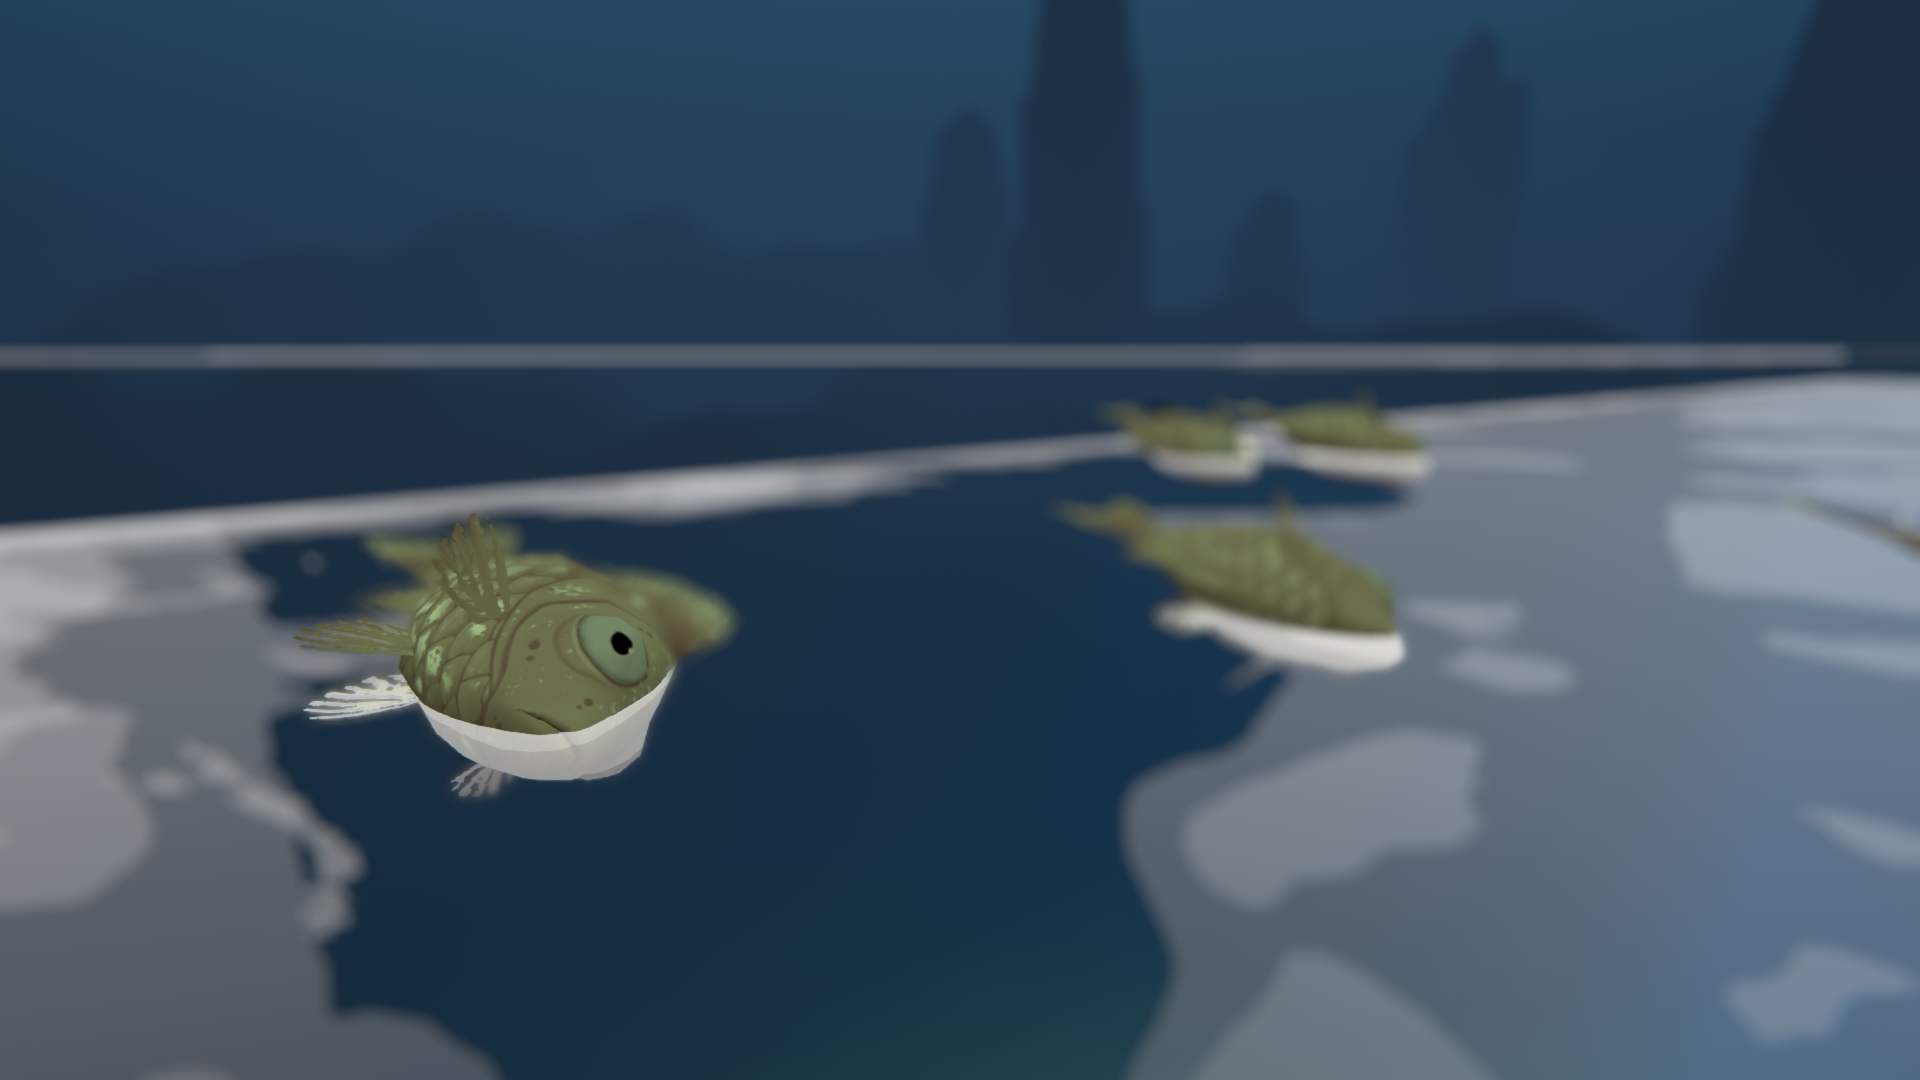 fishery_screenshot_en_06.png